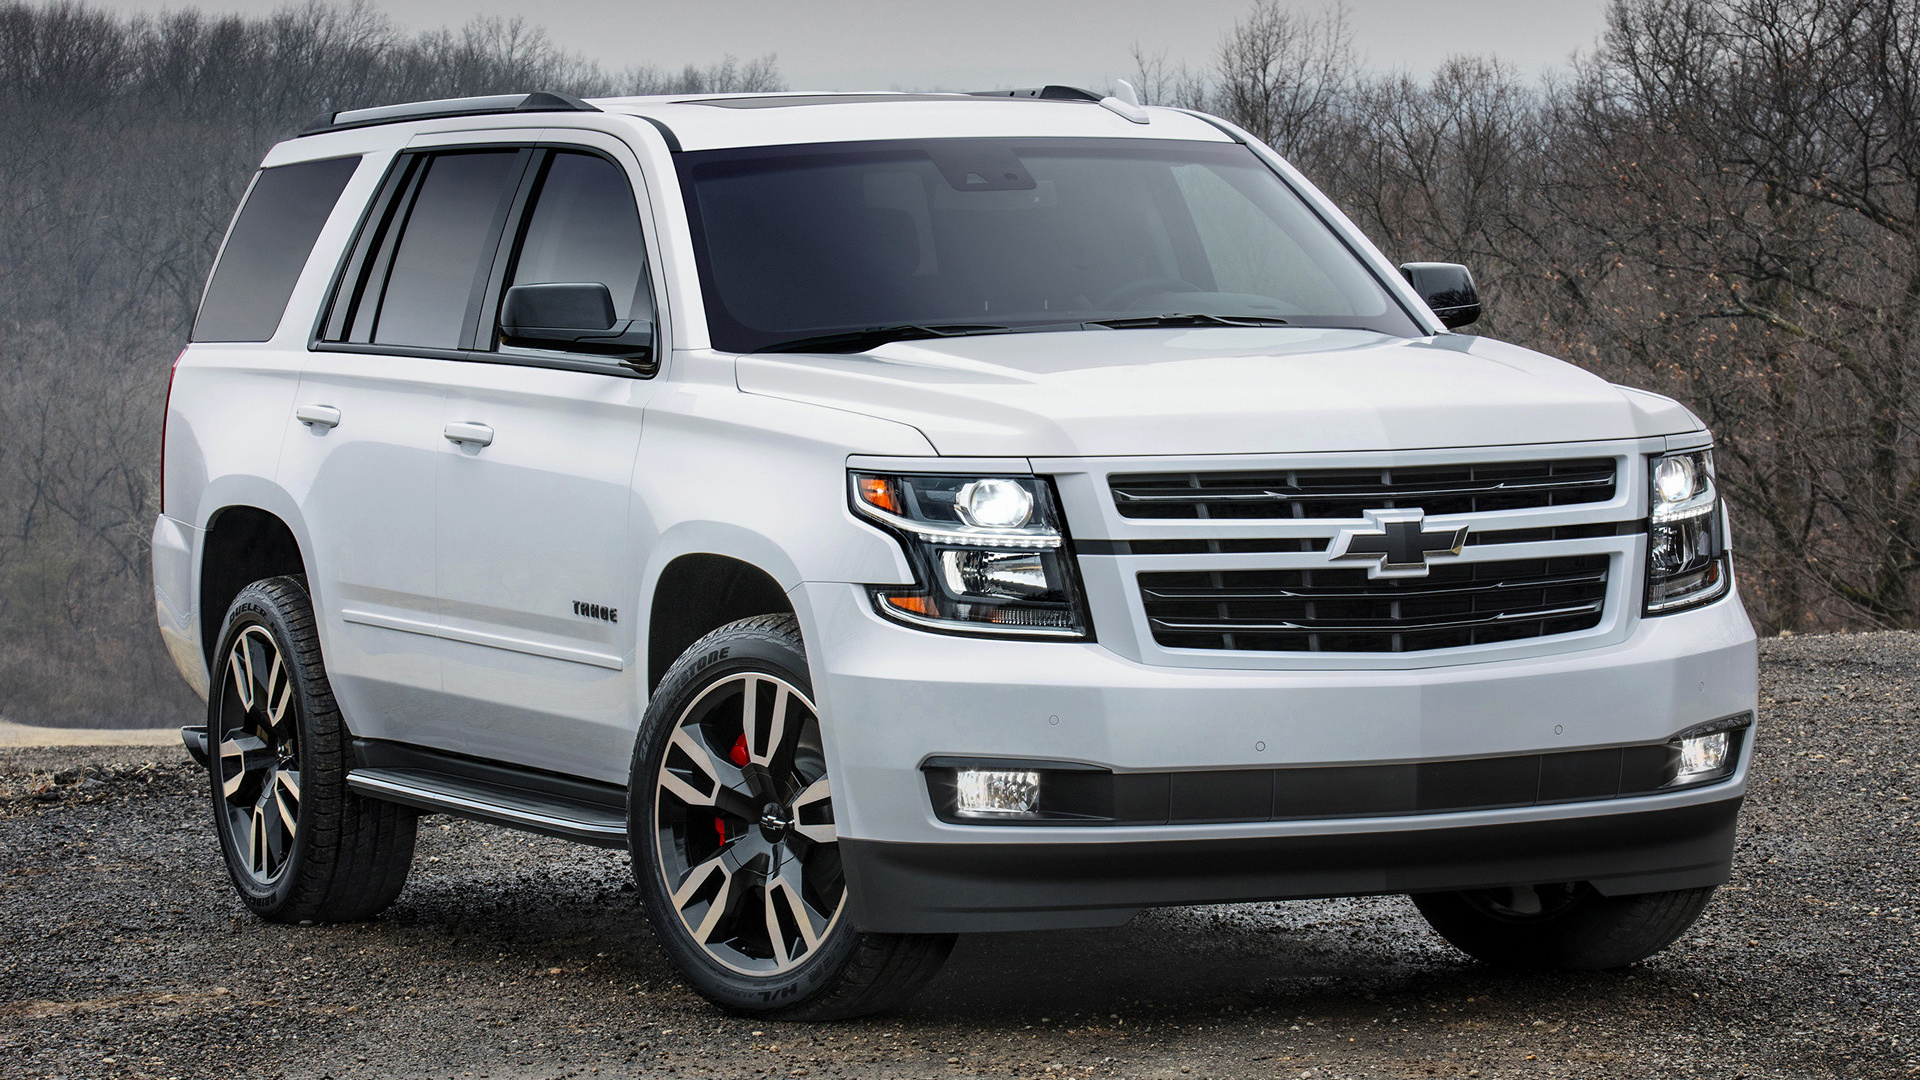 2013 Chevy Impala Ltz >> 2018 Chevrolet Tahoe RST Premier - Wallpapers and HD Images | Car Pixel